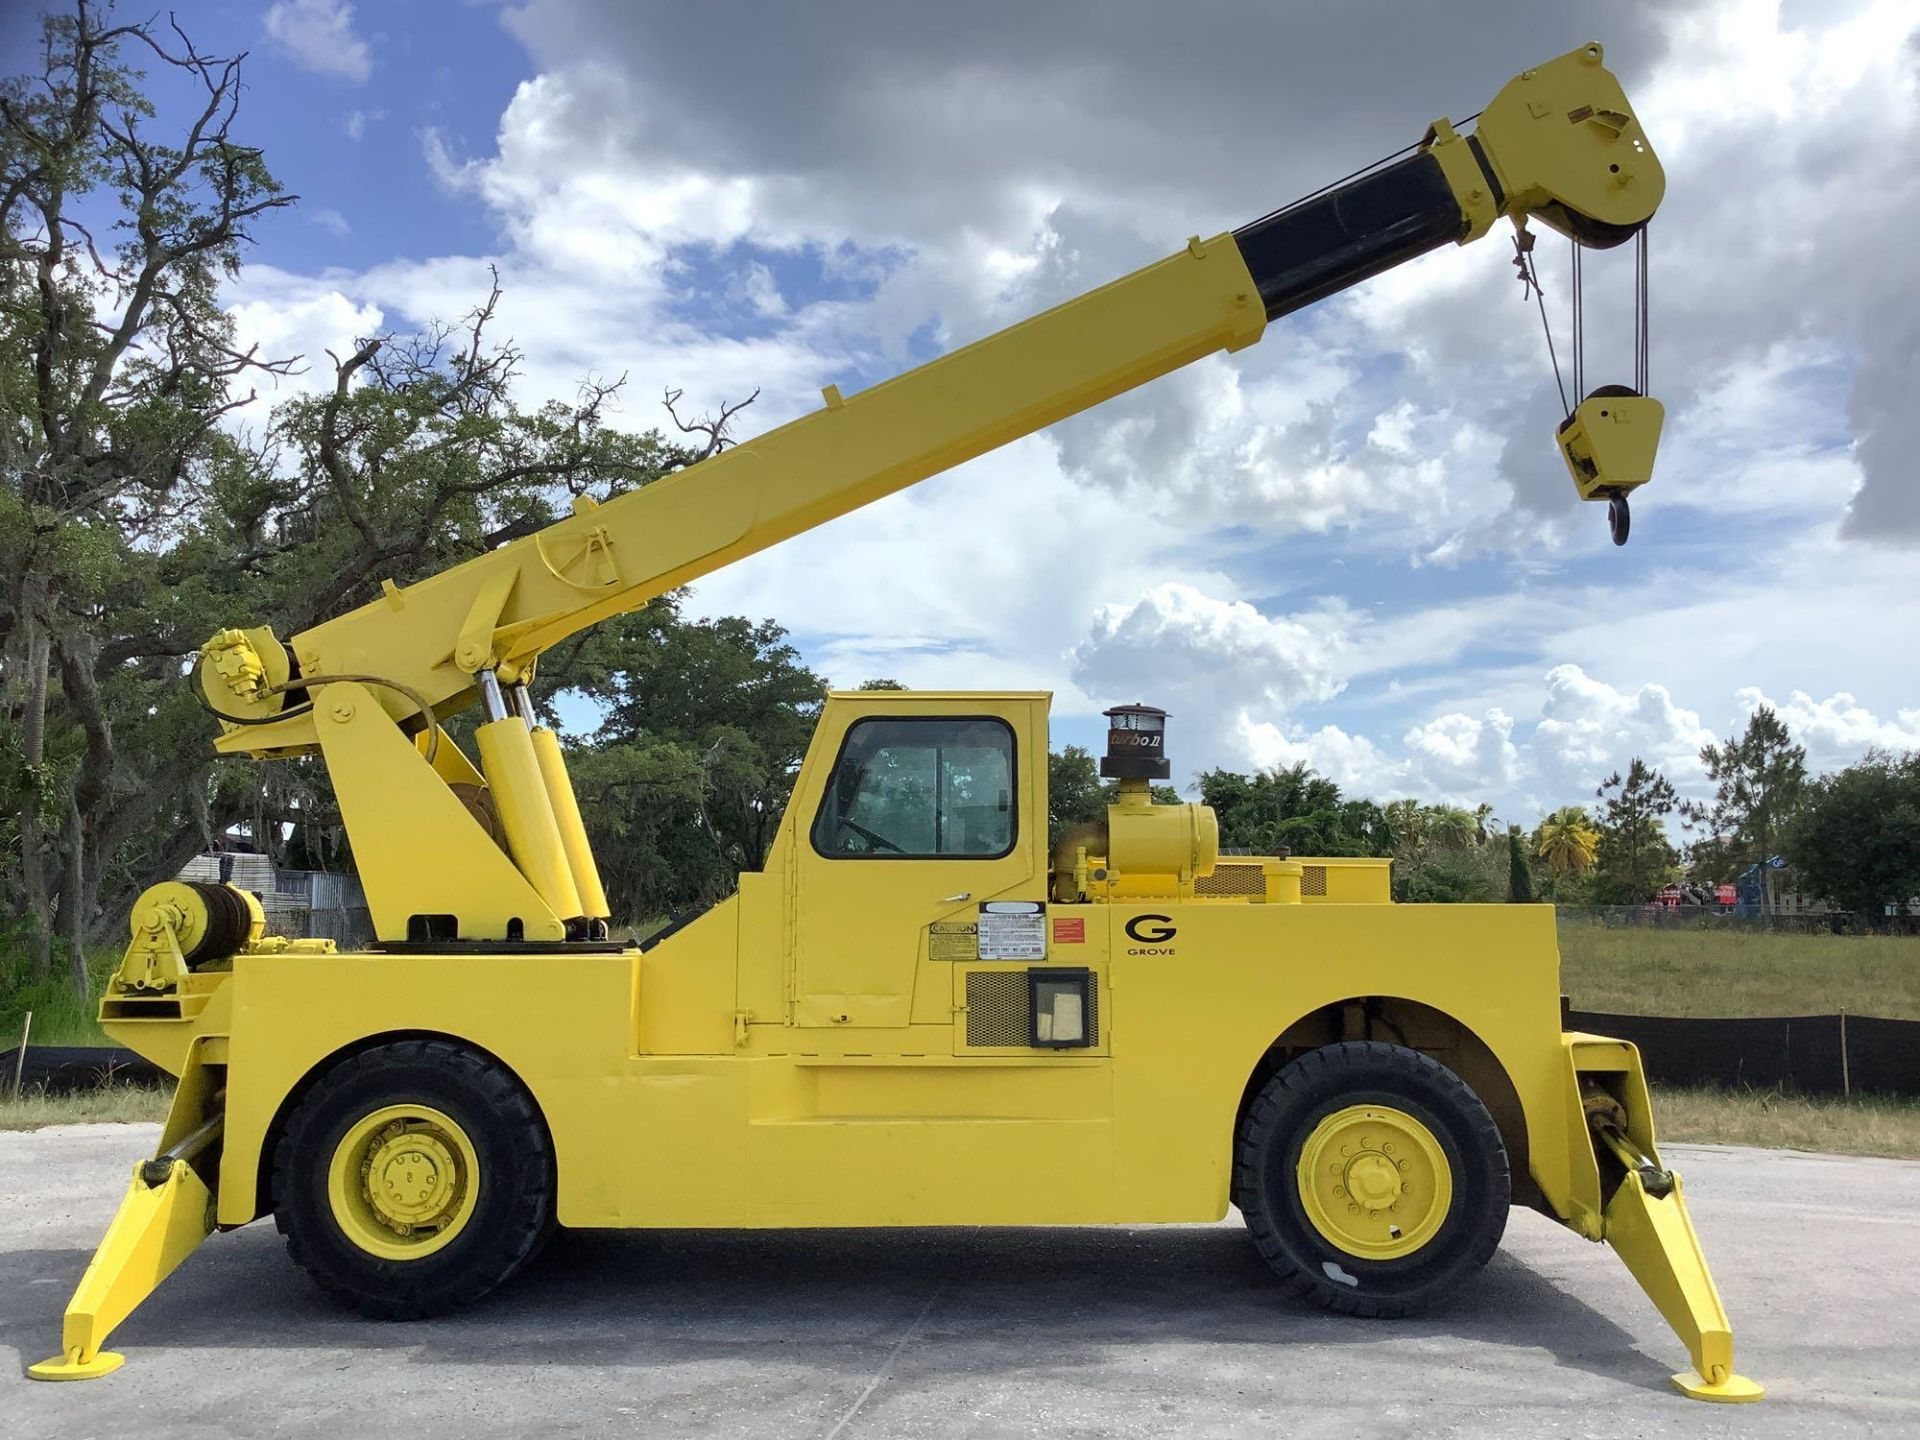 GROVE TRUCK CRANE MODEL IND1012, HYDRAULIC, TELESCOPIC, DIESEL,OUTRIGGER, RUNS AND OPERATES - Image 2 of 18